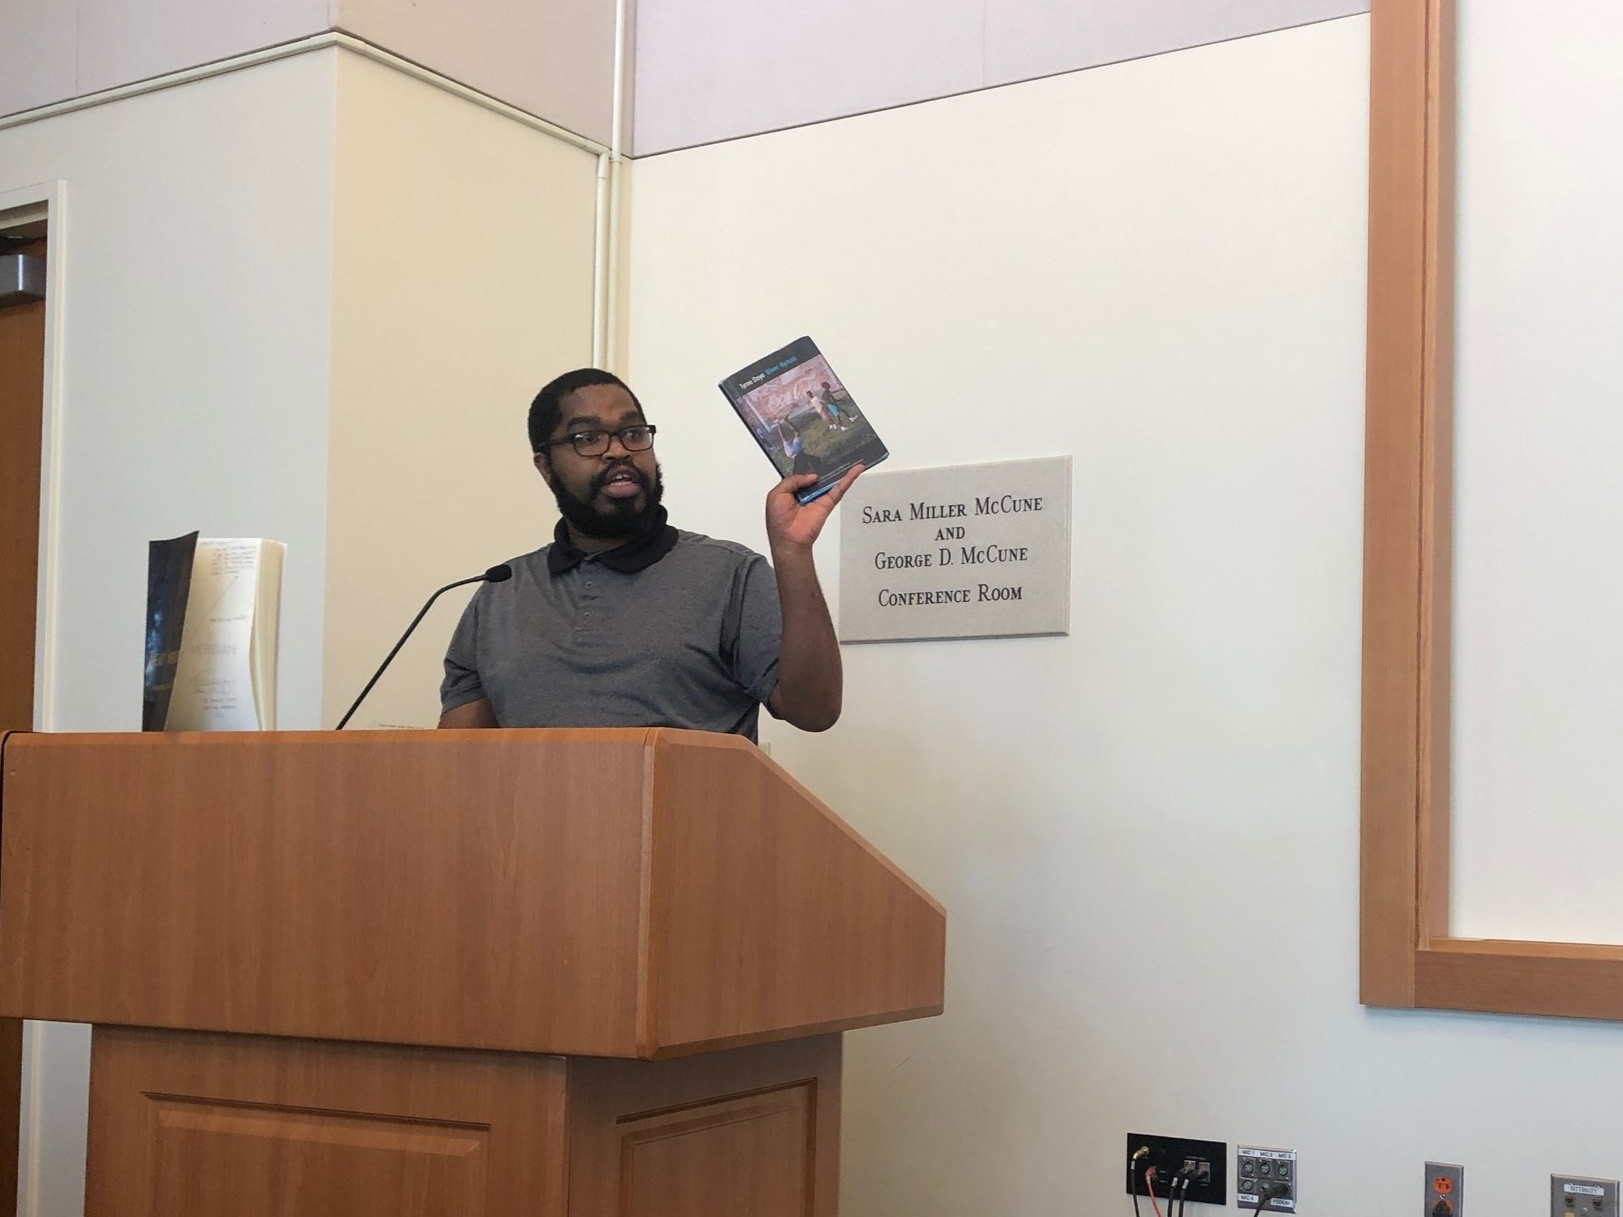 North Carolina-based poet Tyree Daye presenting his poetry collection  River Hymns  to UCSB students and poetry lovers at UCSB's 2019 Diana and Simon Raab Writer in Residence Event.